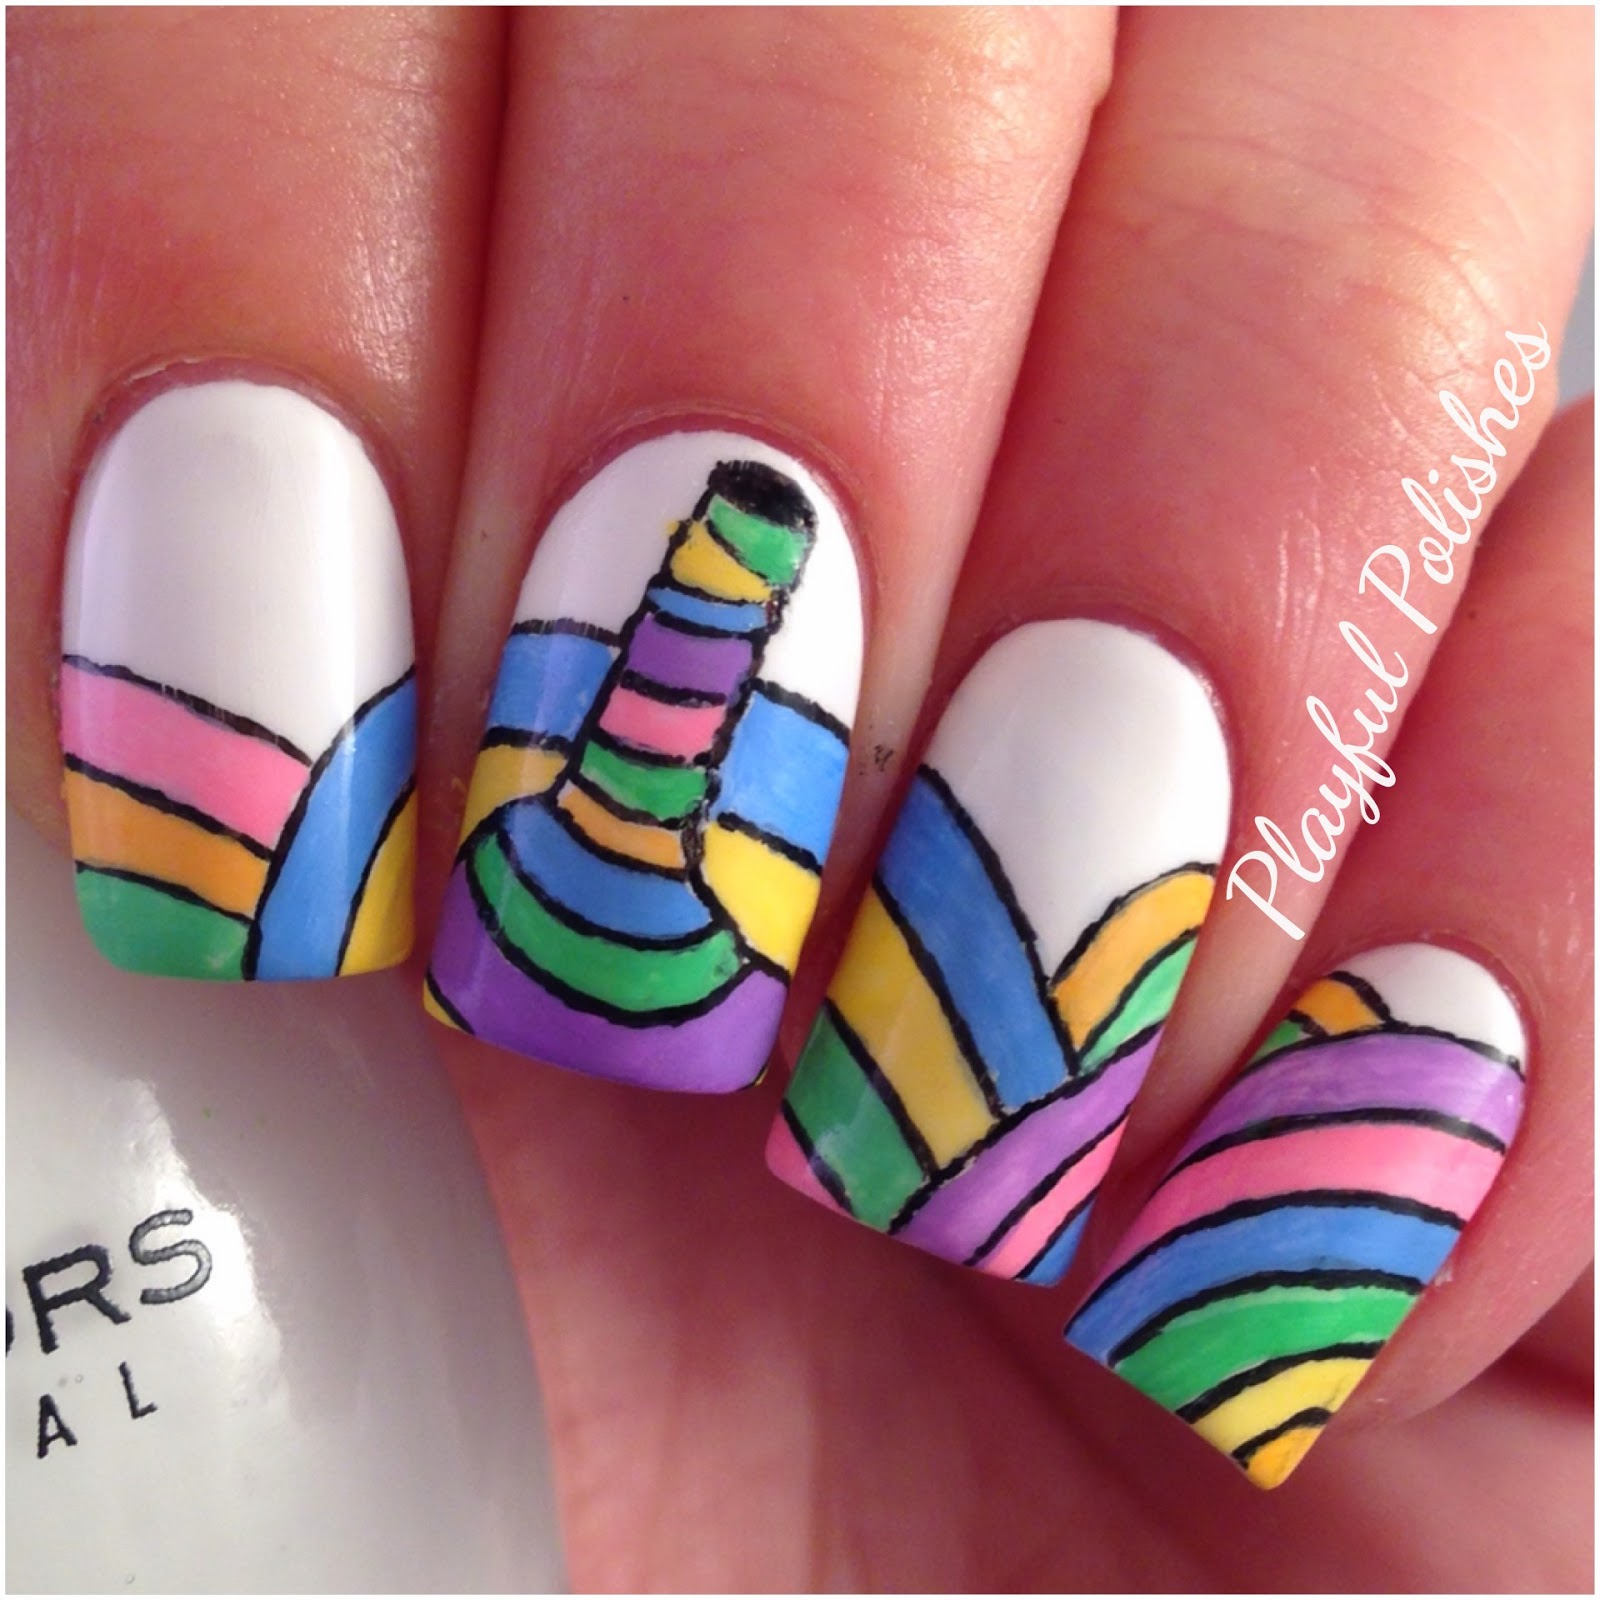 Playful Polishes 31 Day Challenge 2014 Round Up